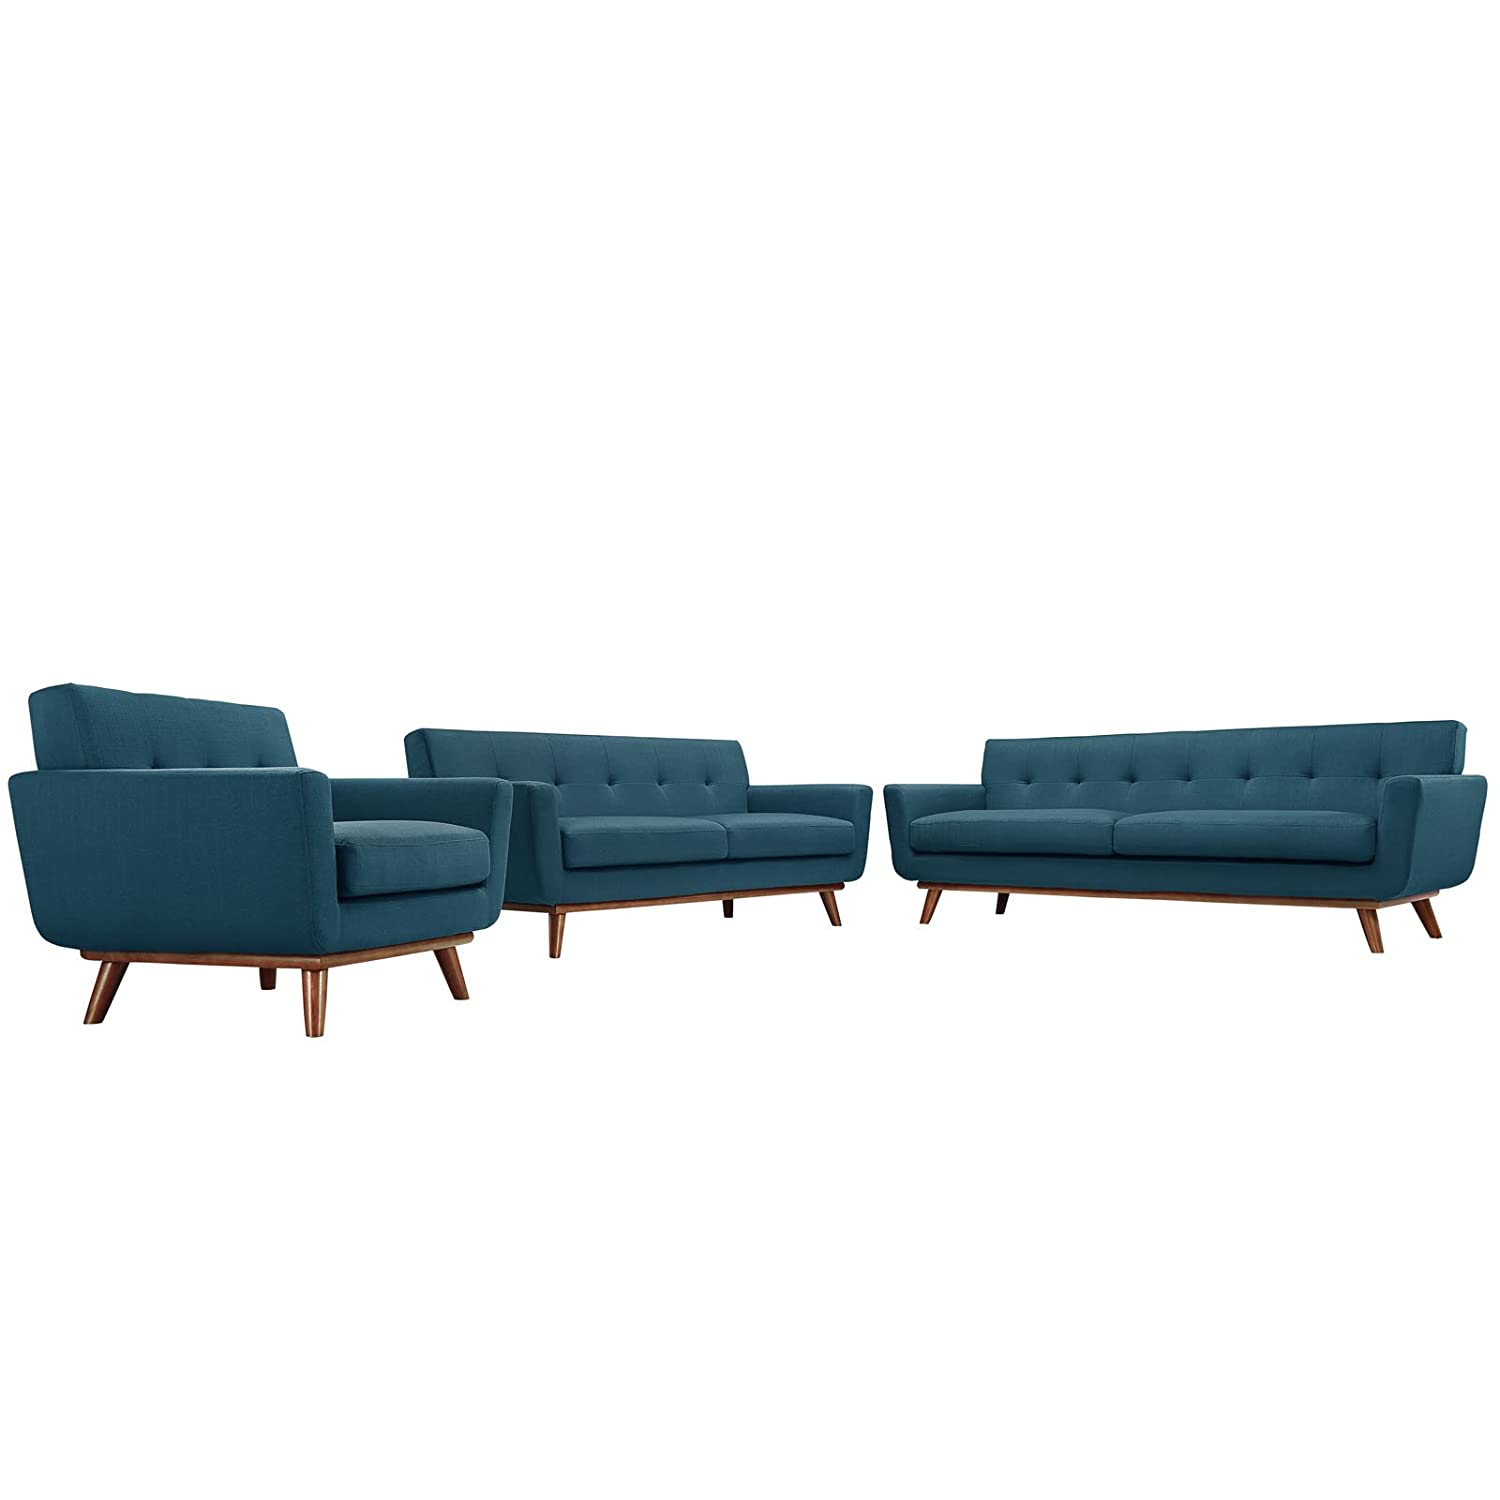 Modern Contemporary Sofa Loveseat and Armchair Set of Three Navy